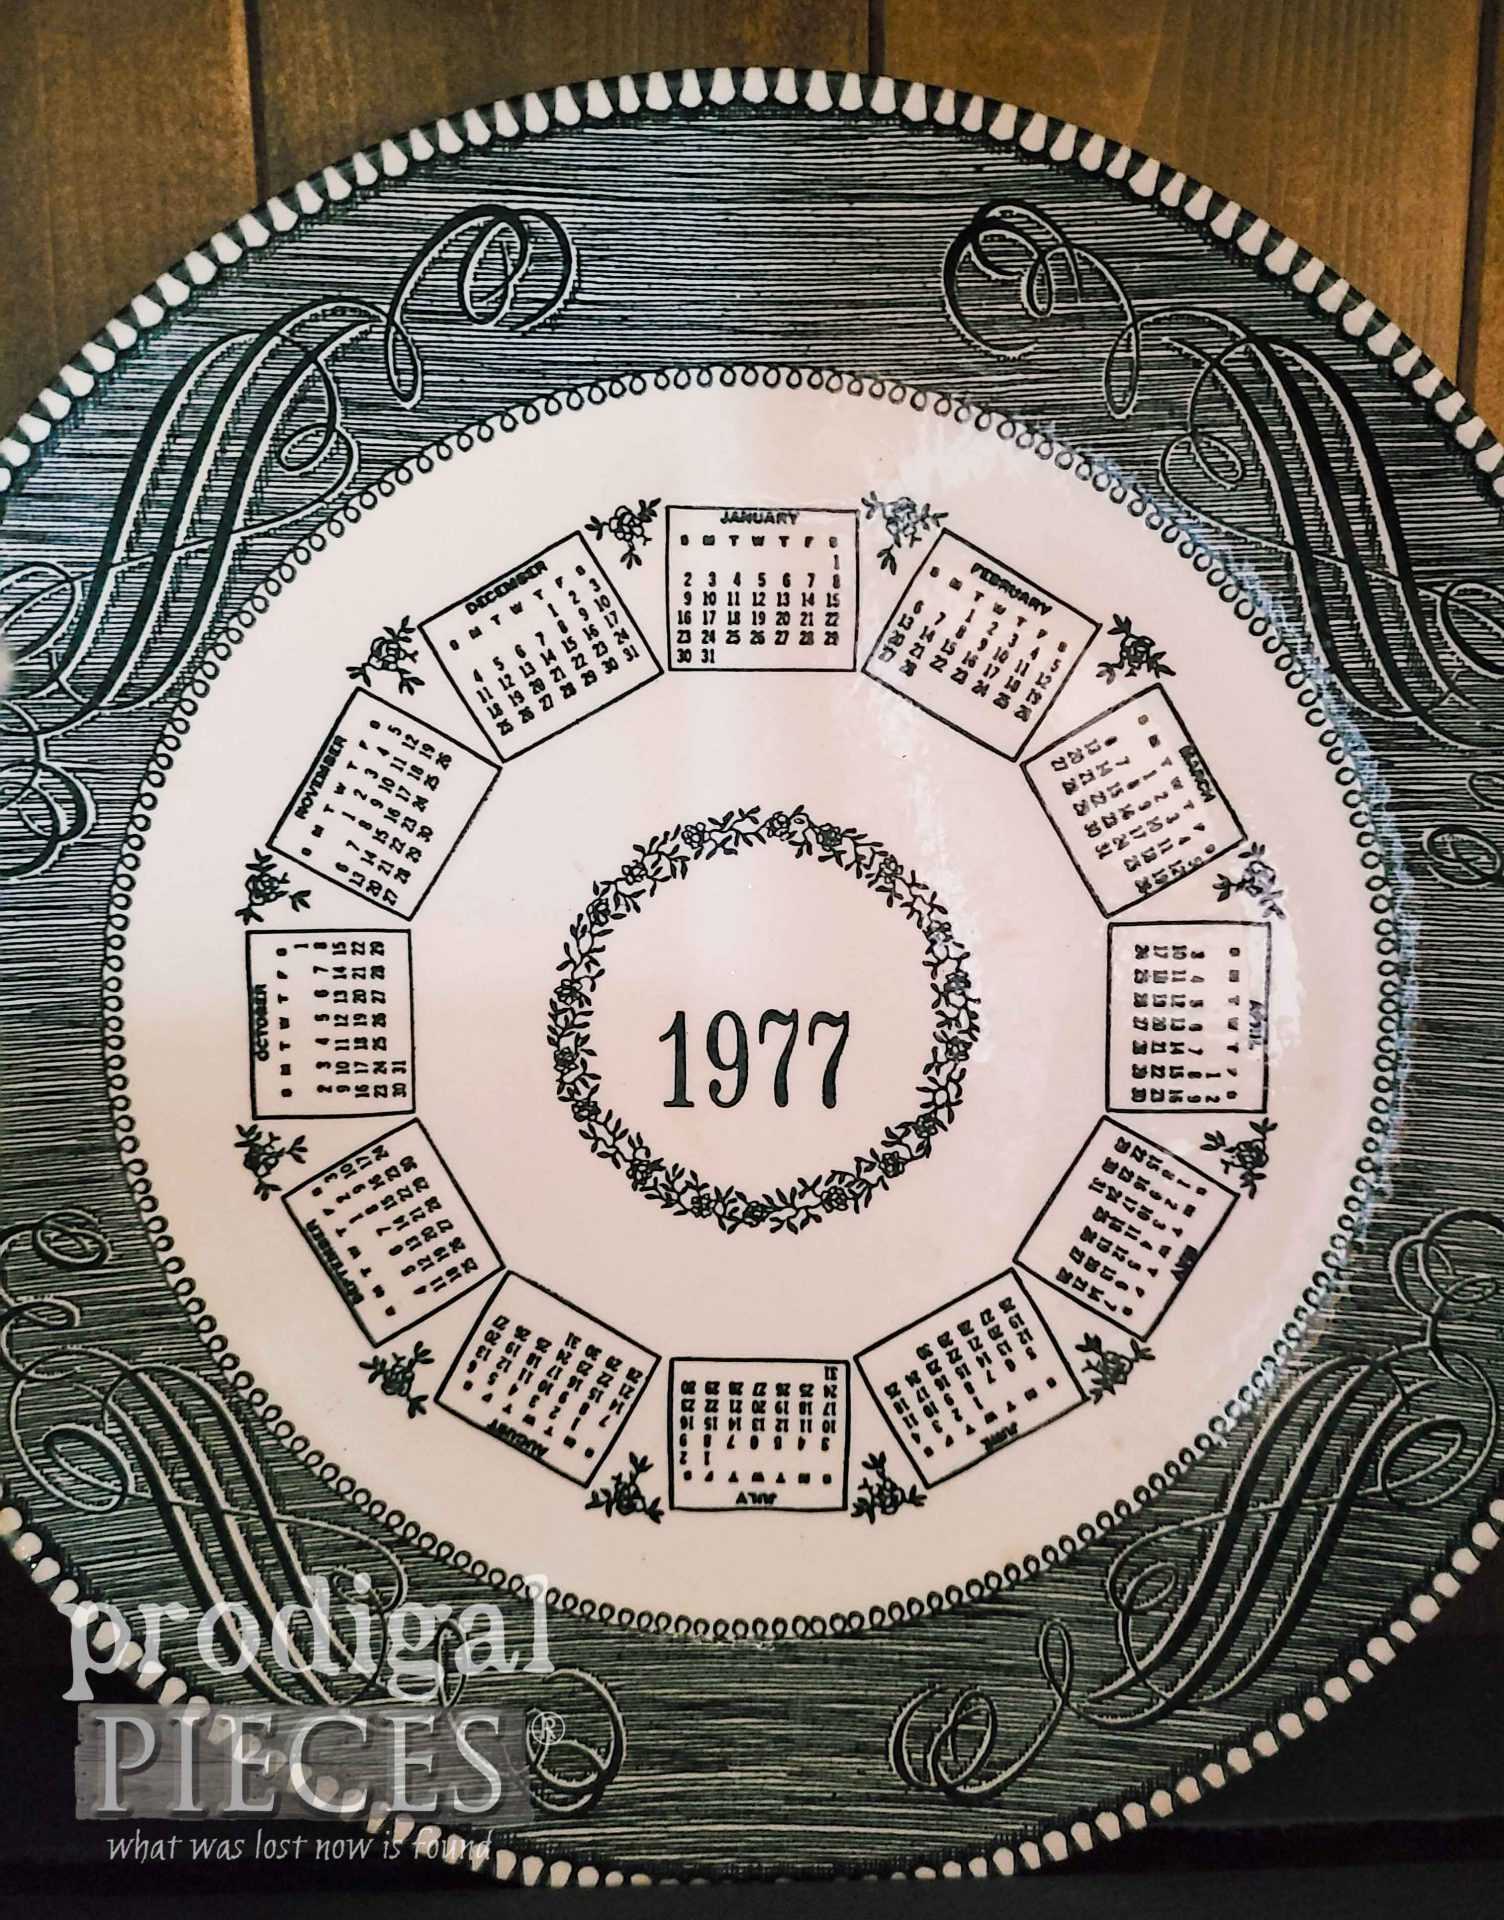 Currier & Ives Dinner Plate 1977 | prodigalpieces.com #prodigalpieces #currierives #vintage #antique #dinnerware